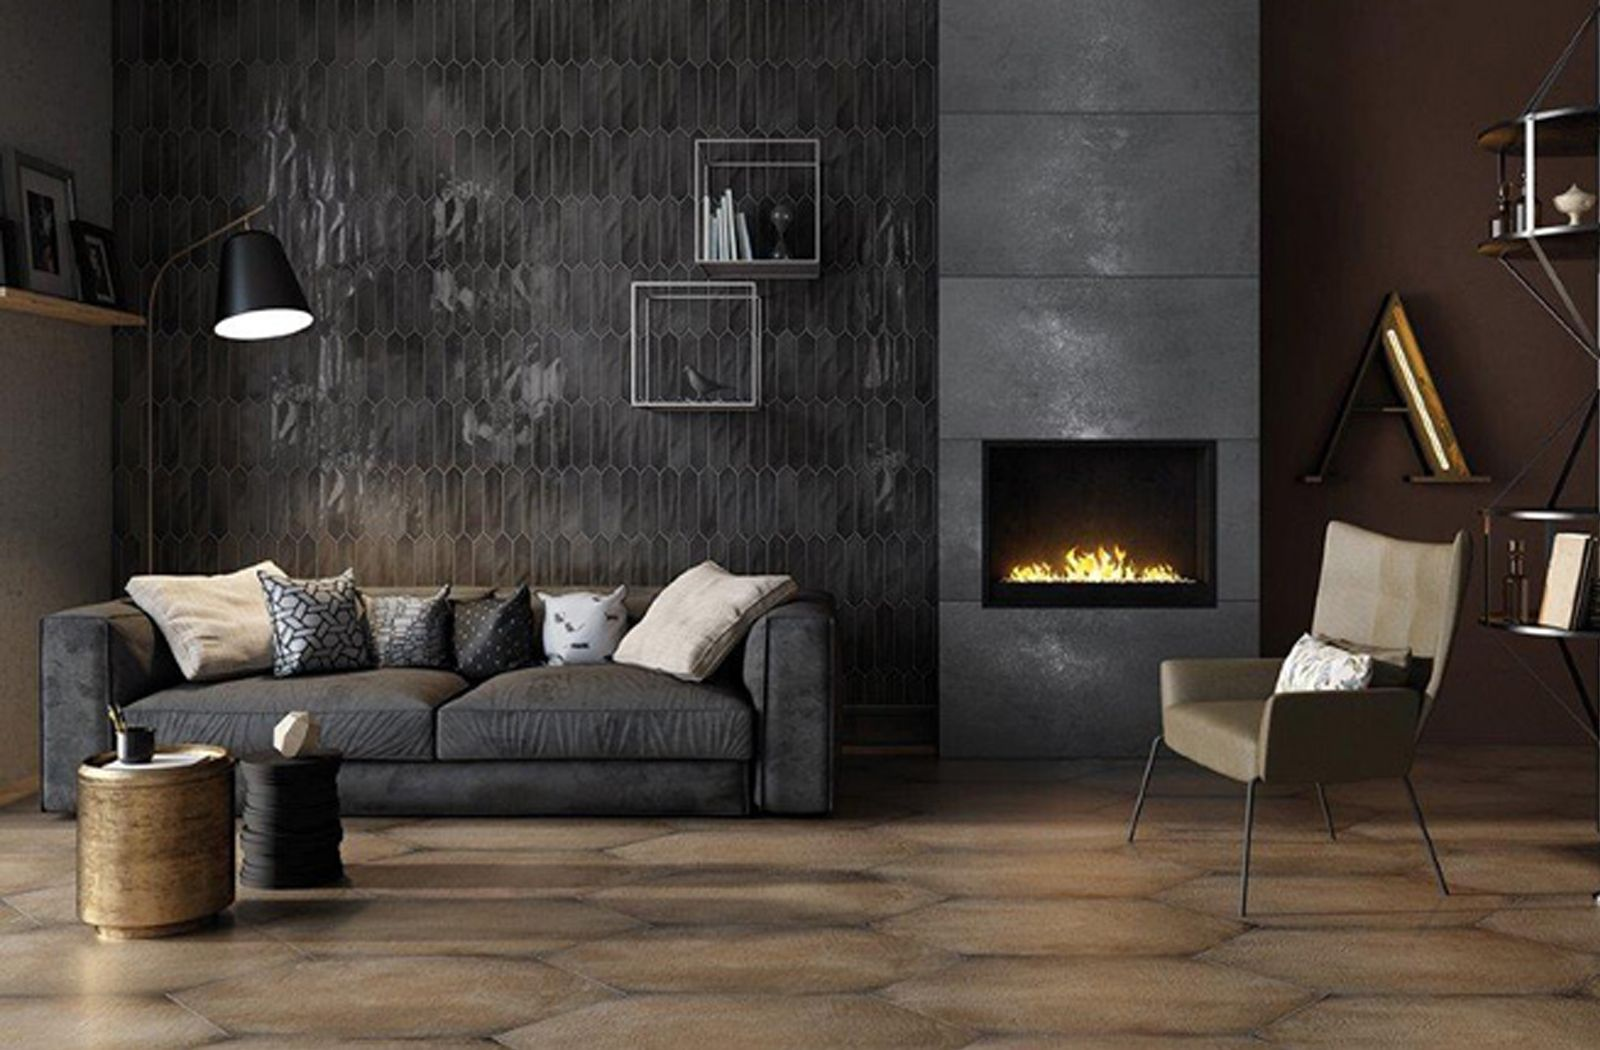 Dark Luxurious Living Area With Feature Wall Featuring Crayons Wall Tile By Ceramiche Settecento Home Carpet Wall Tiles Interior Design #wall #tiles #design #for #living #room